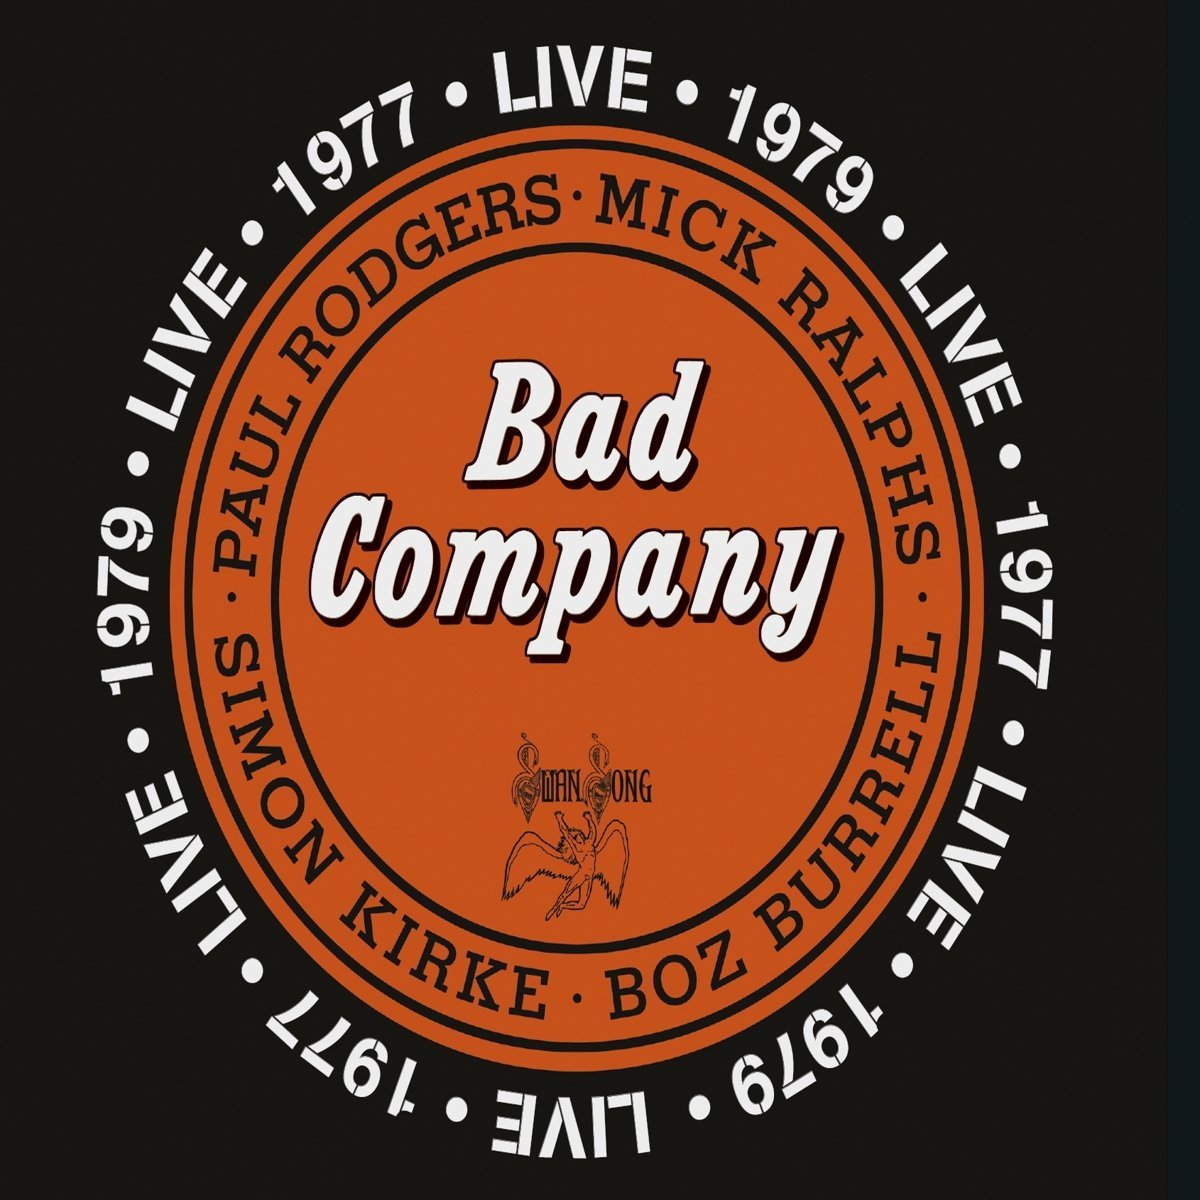 Bad Company - Bad Company Live In Concert 1977 & 1979 [2CD]